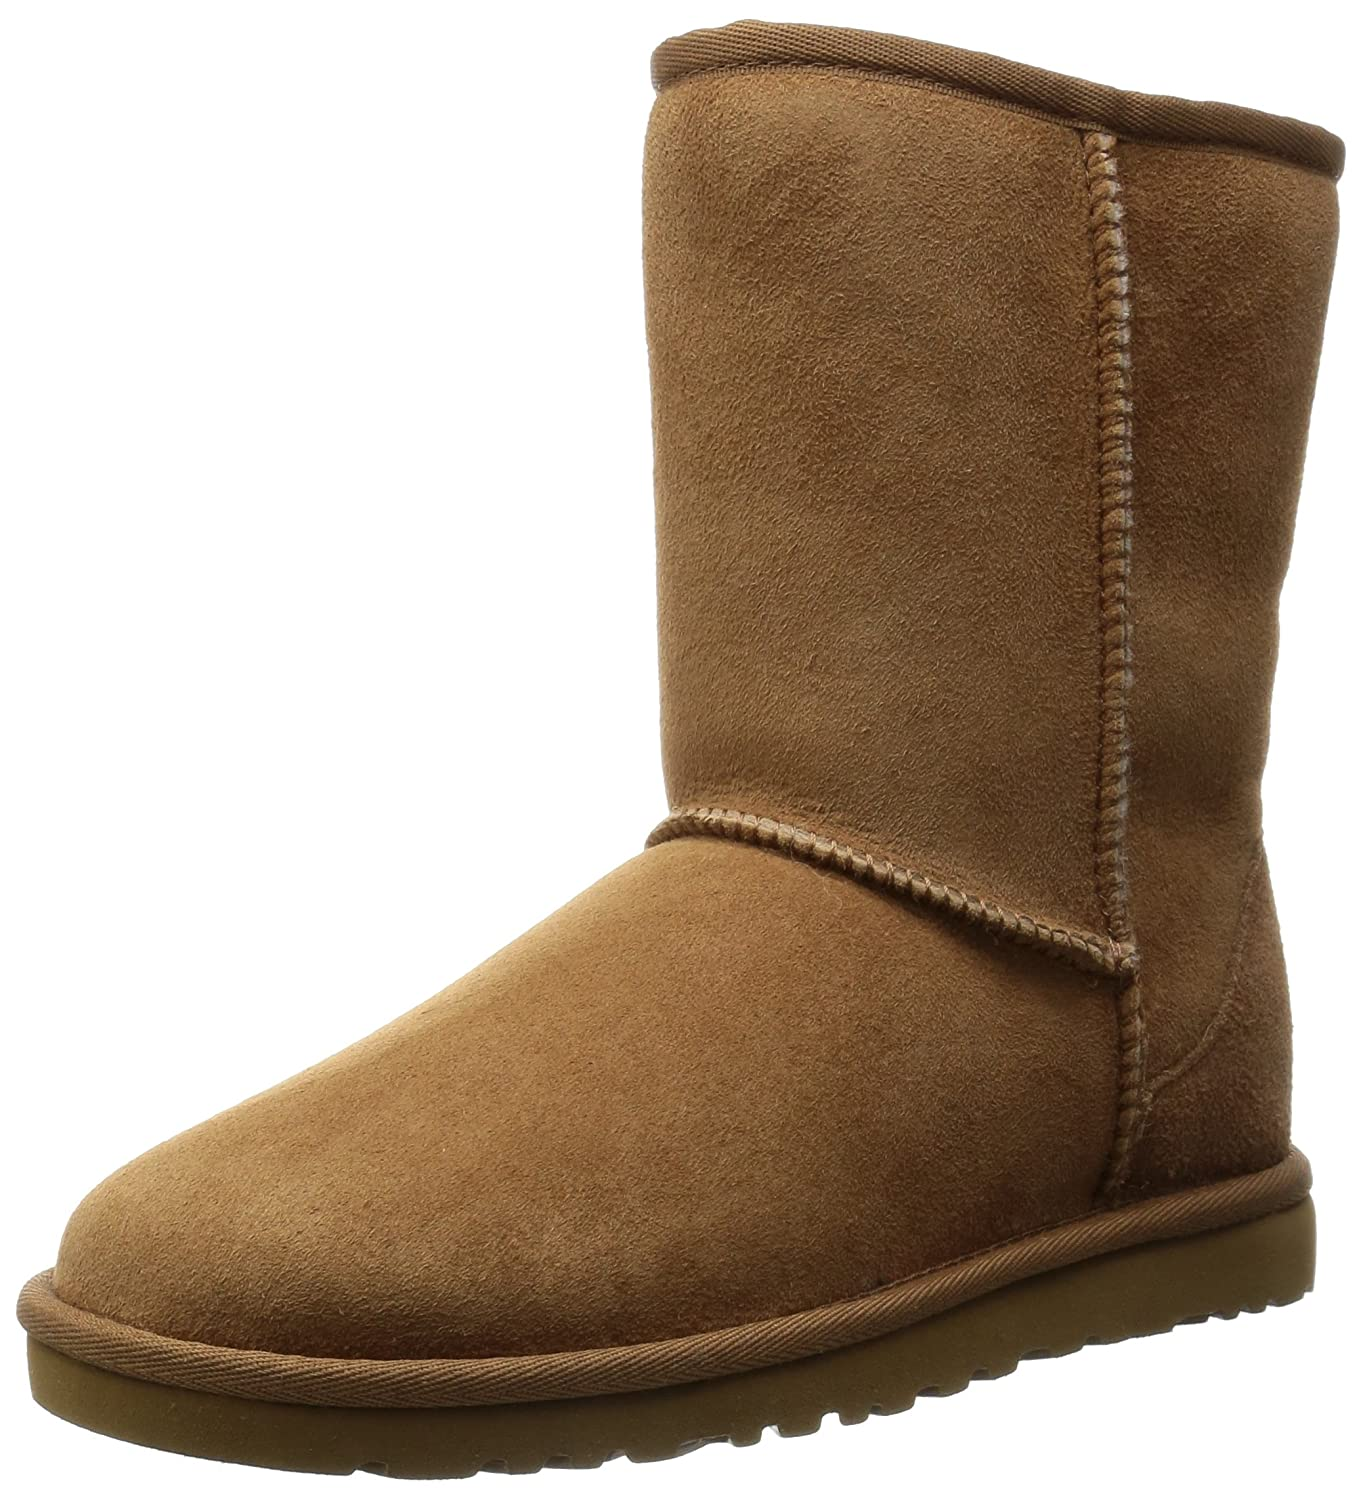 860bbff6308 UGG Men's Classic Short Winter Boot